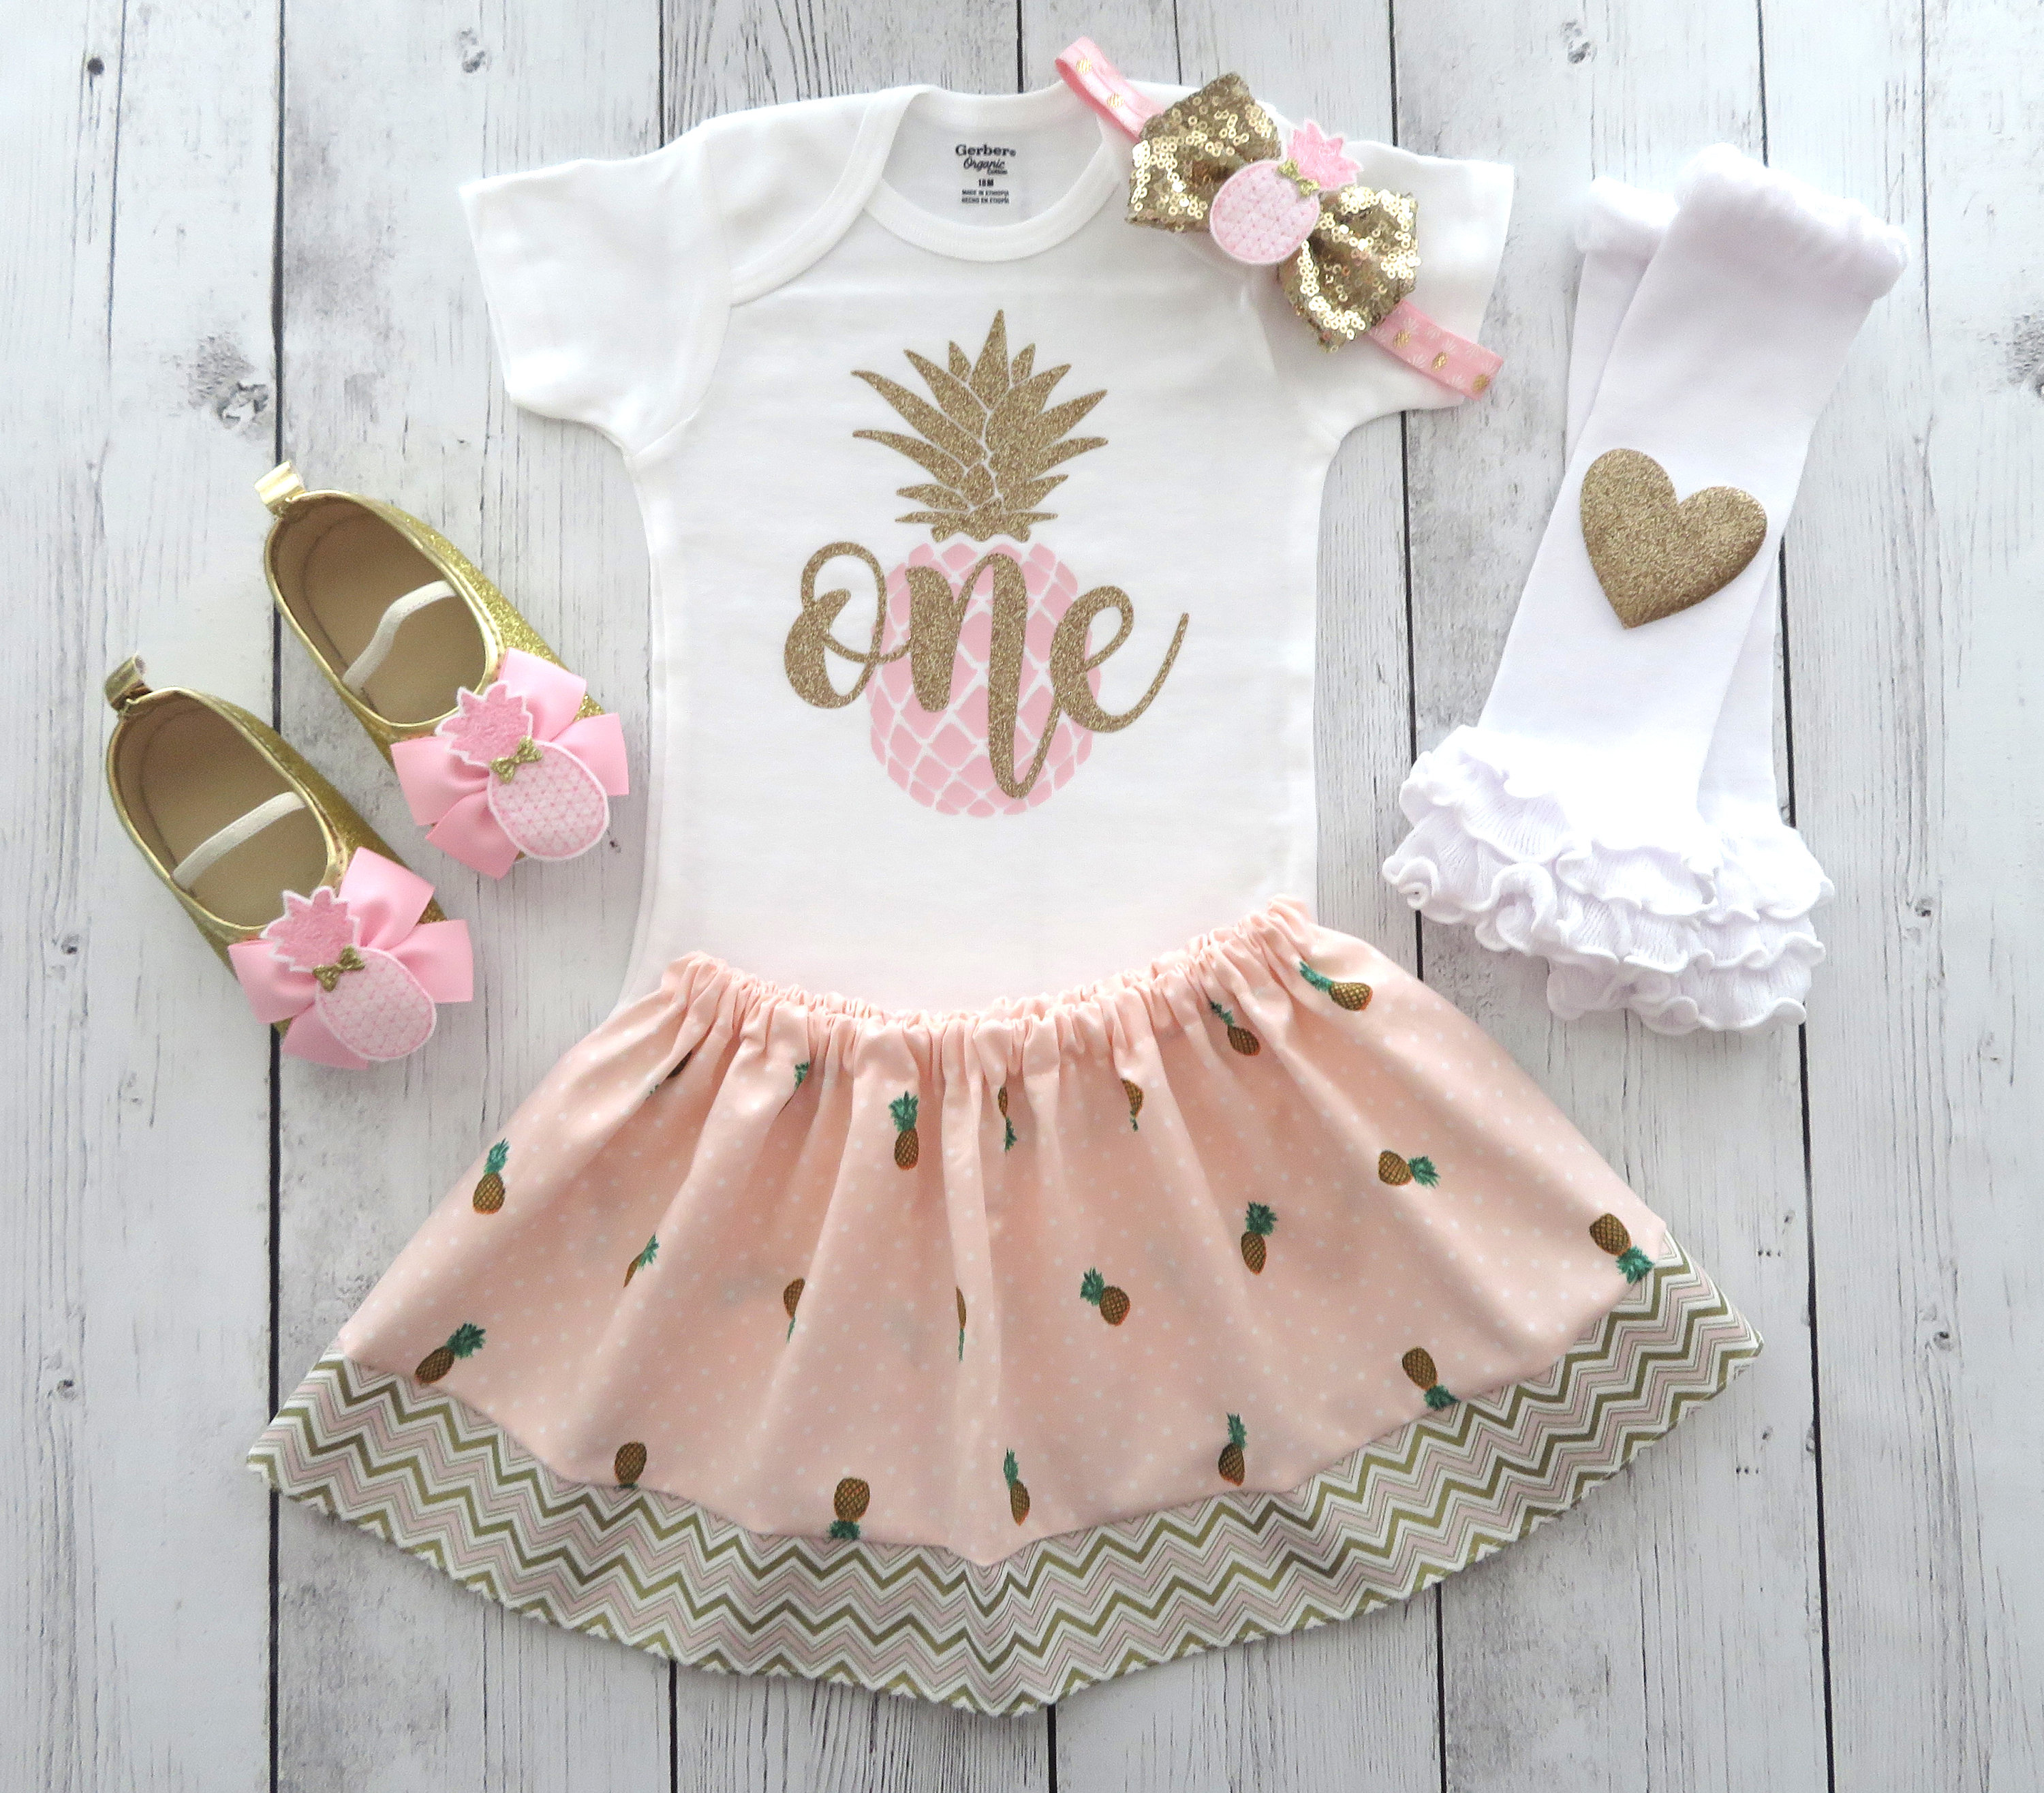 Pineapple First Birthday Outfit in Pink and Gold - girl 1st birthday outfit, luau birthday outfit, summer birthday girl, aloha birthday